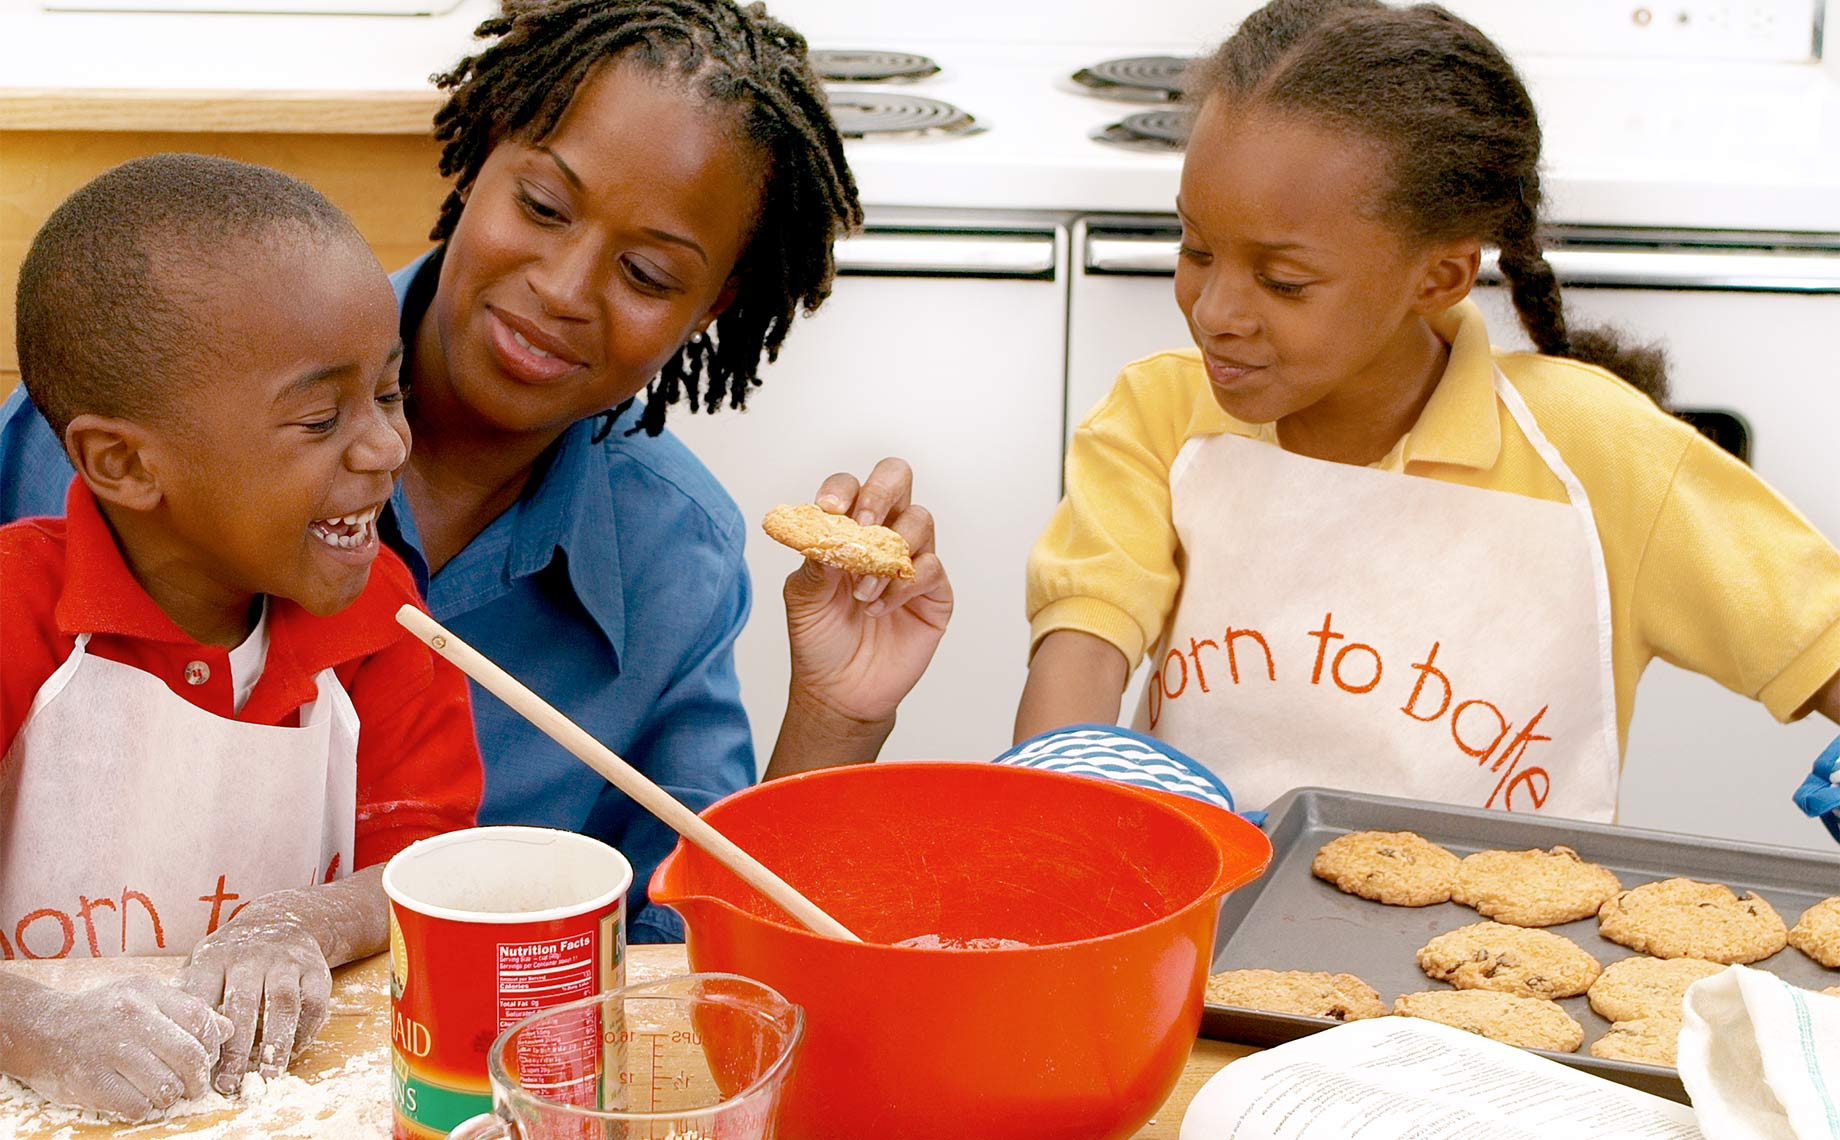 Mom Making Cookies with Kids, Commercial Photographer Greg Anthony Boston MA